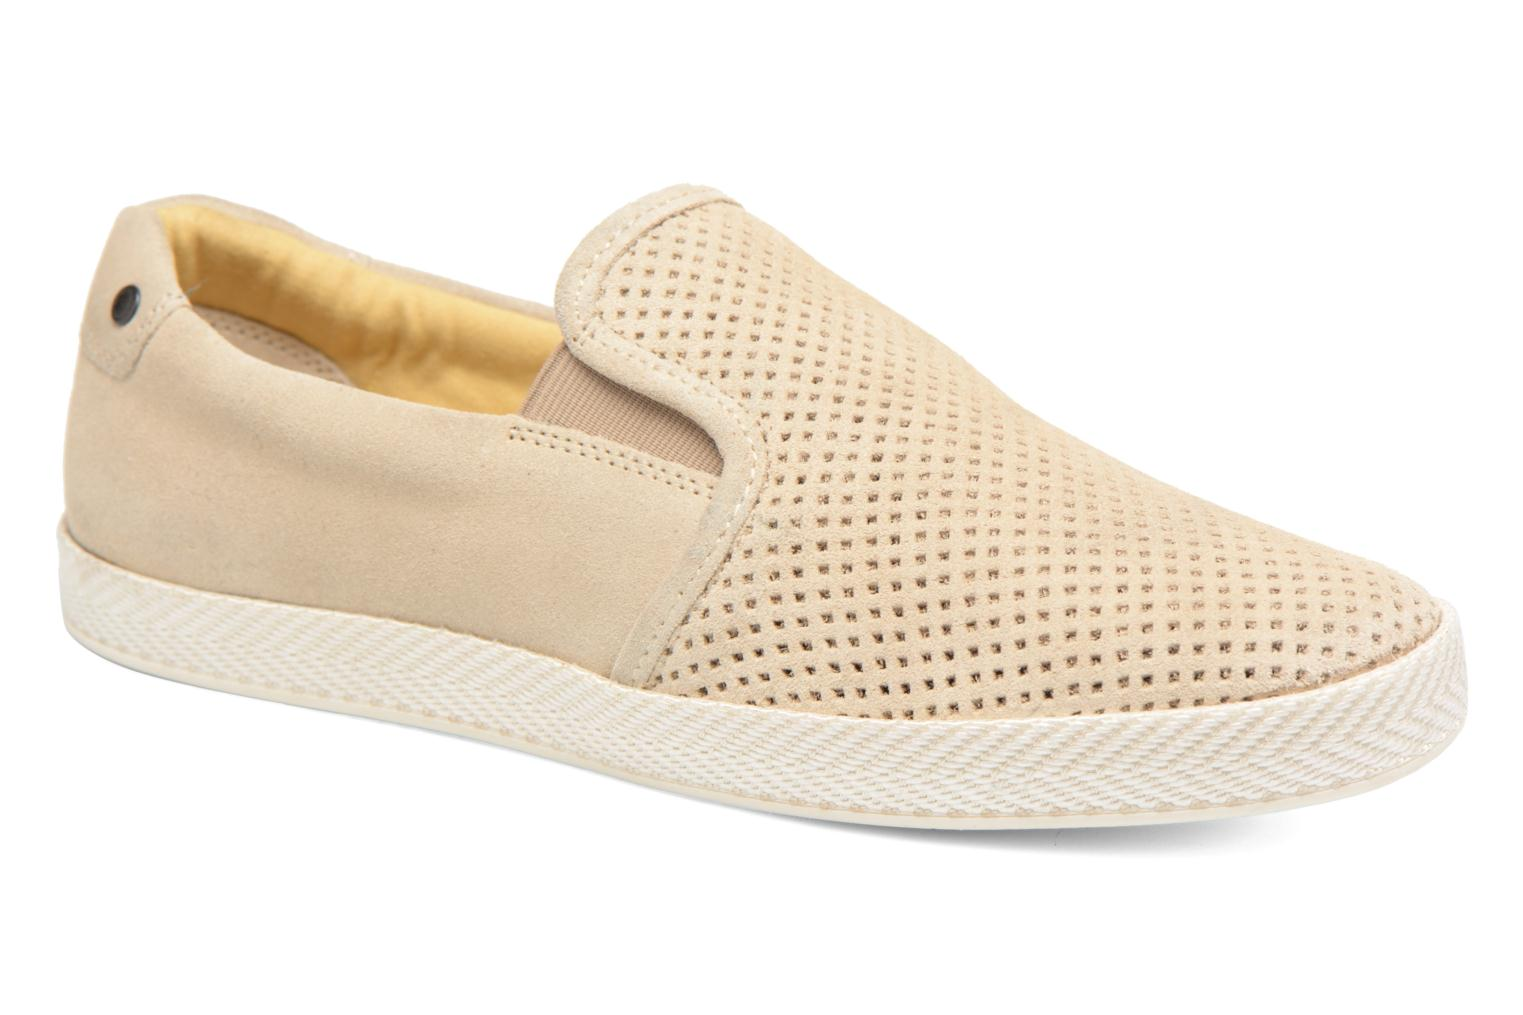 Marques Chaussure homme Base London homme Clipper Suede Beige